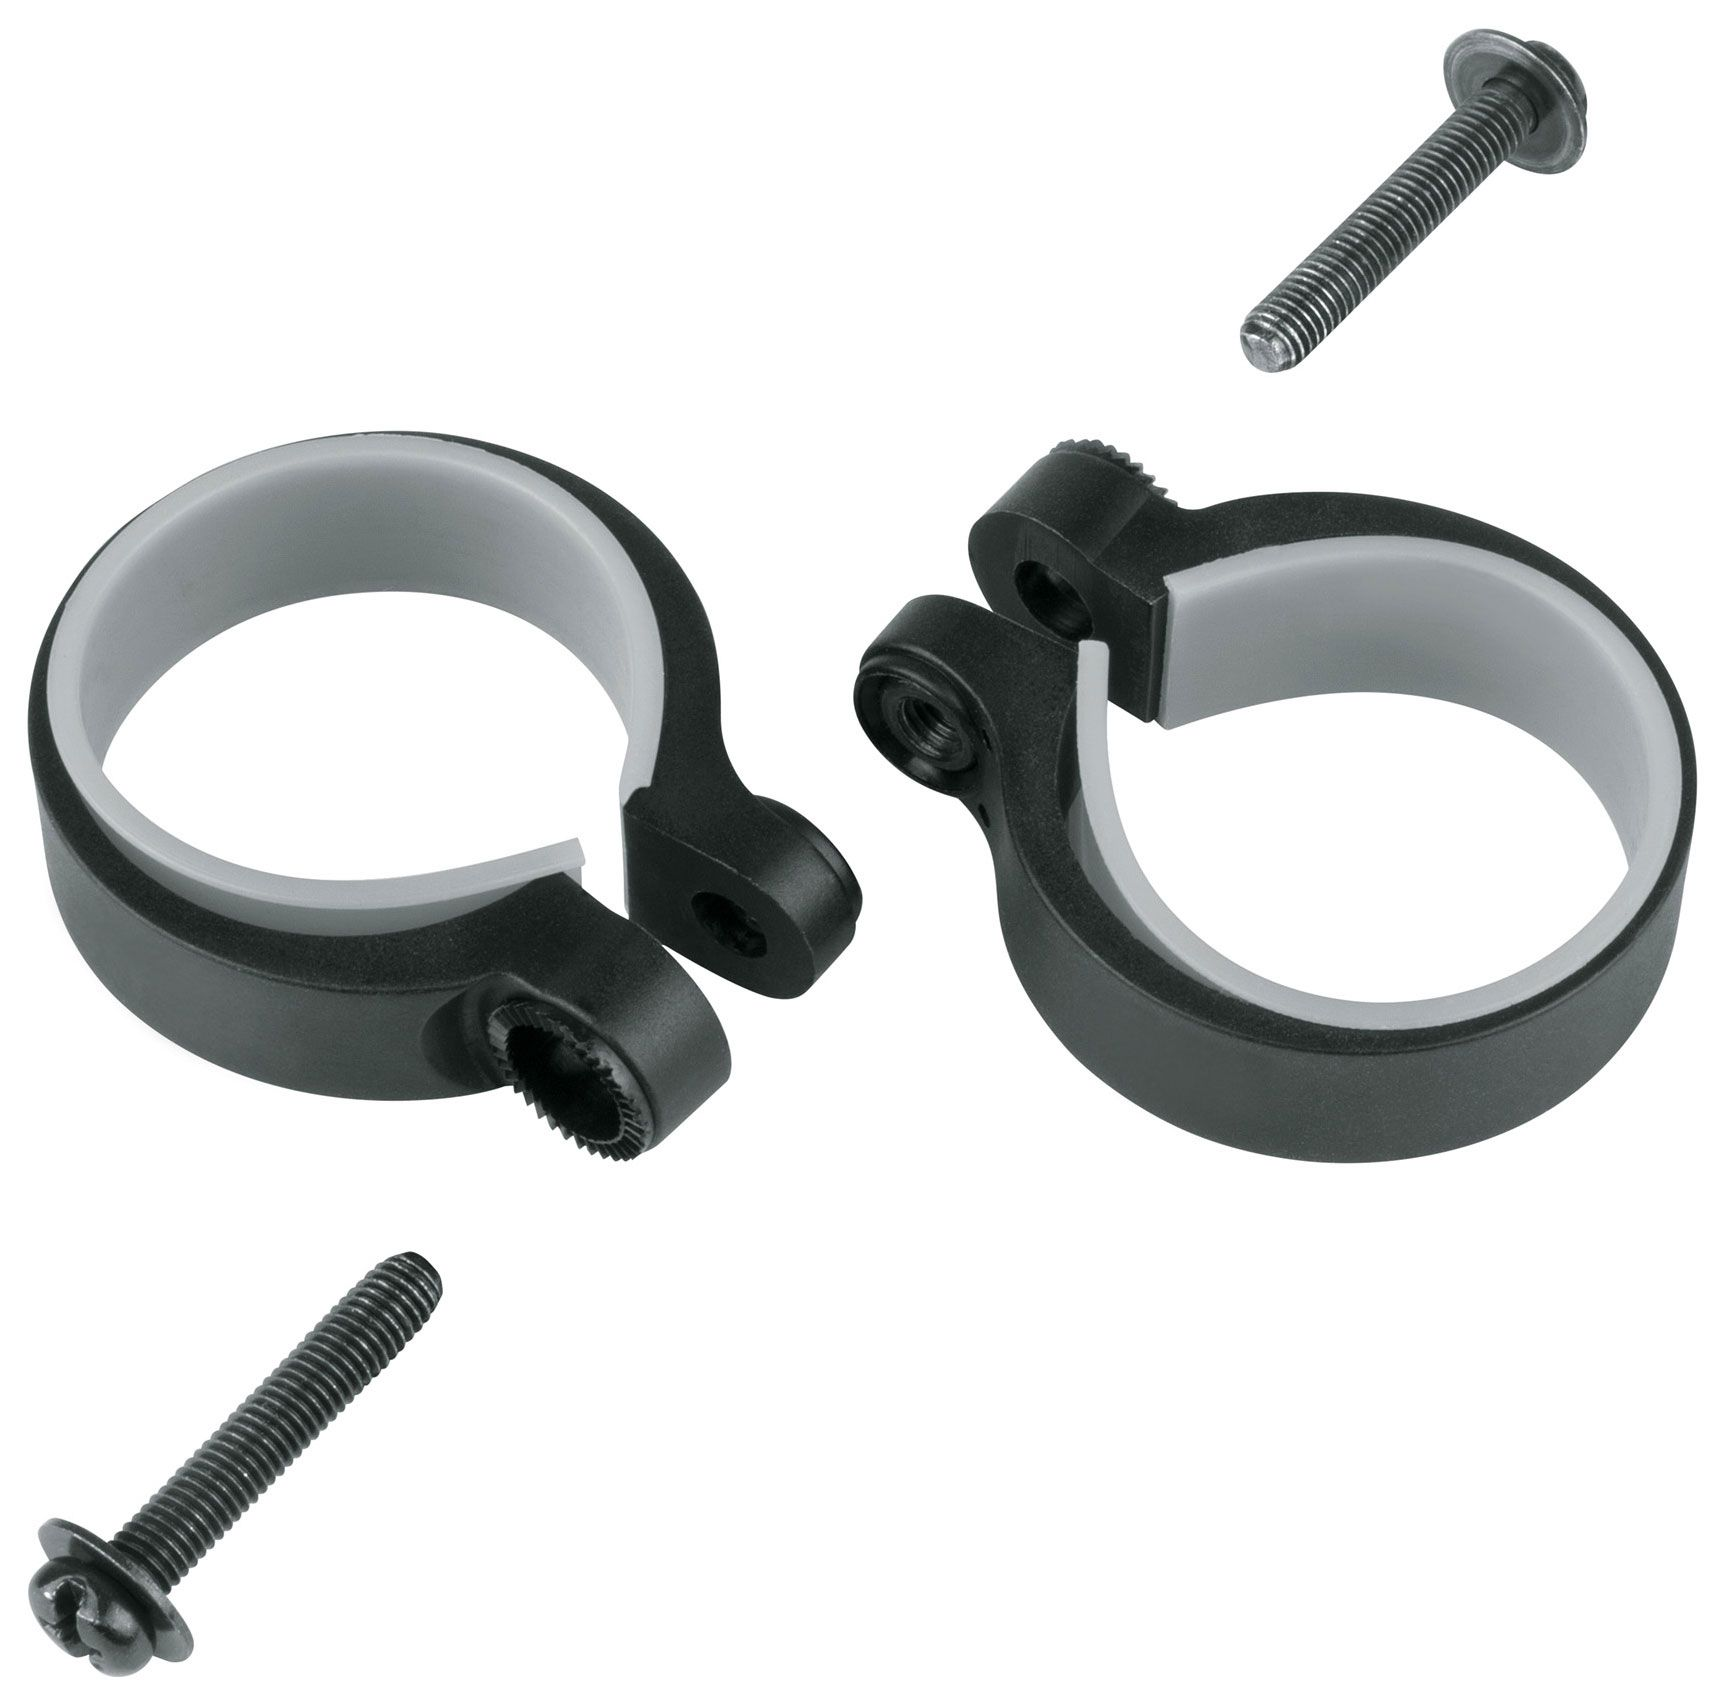 цены Запчасть SKS Stay Mounting Clamps 2 Pcs. 31,0 - 34,5Mm (SKS-11483)